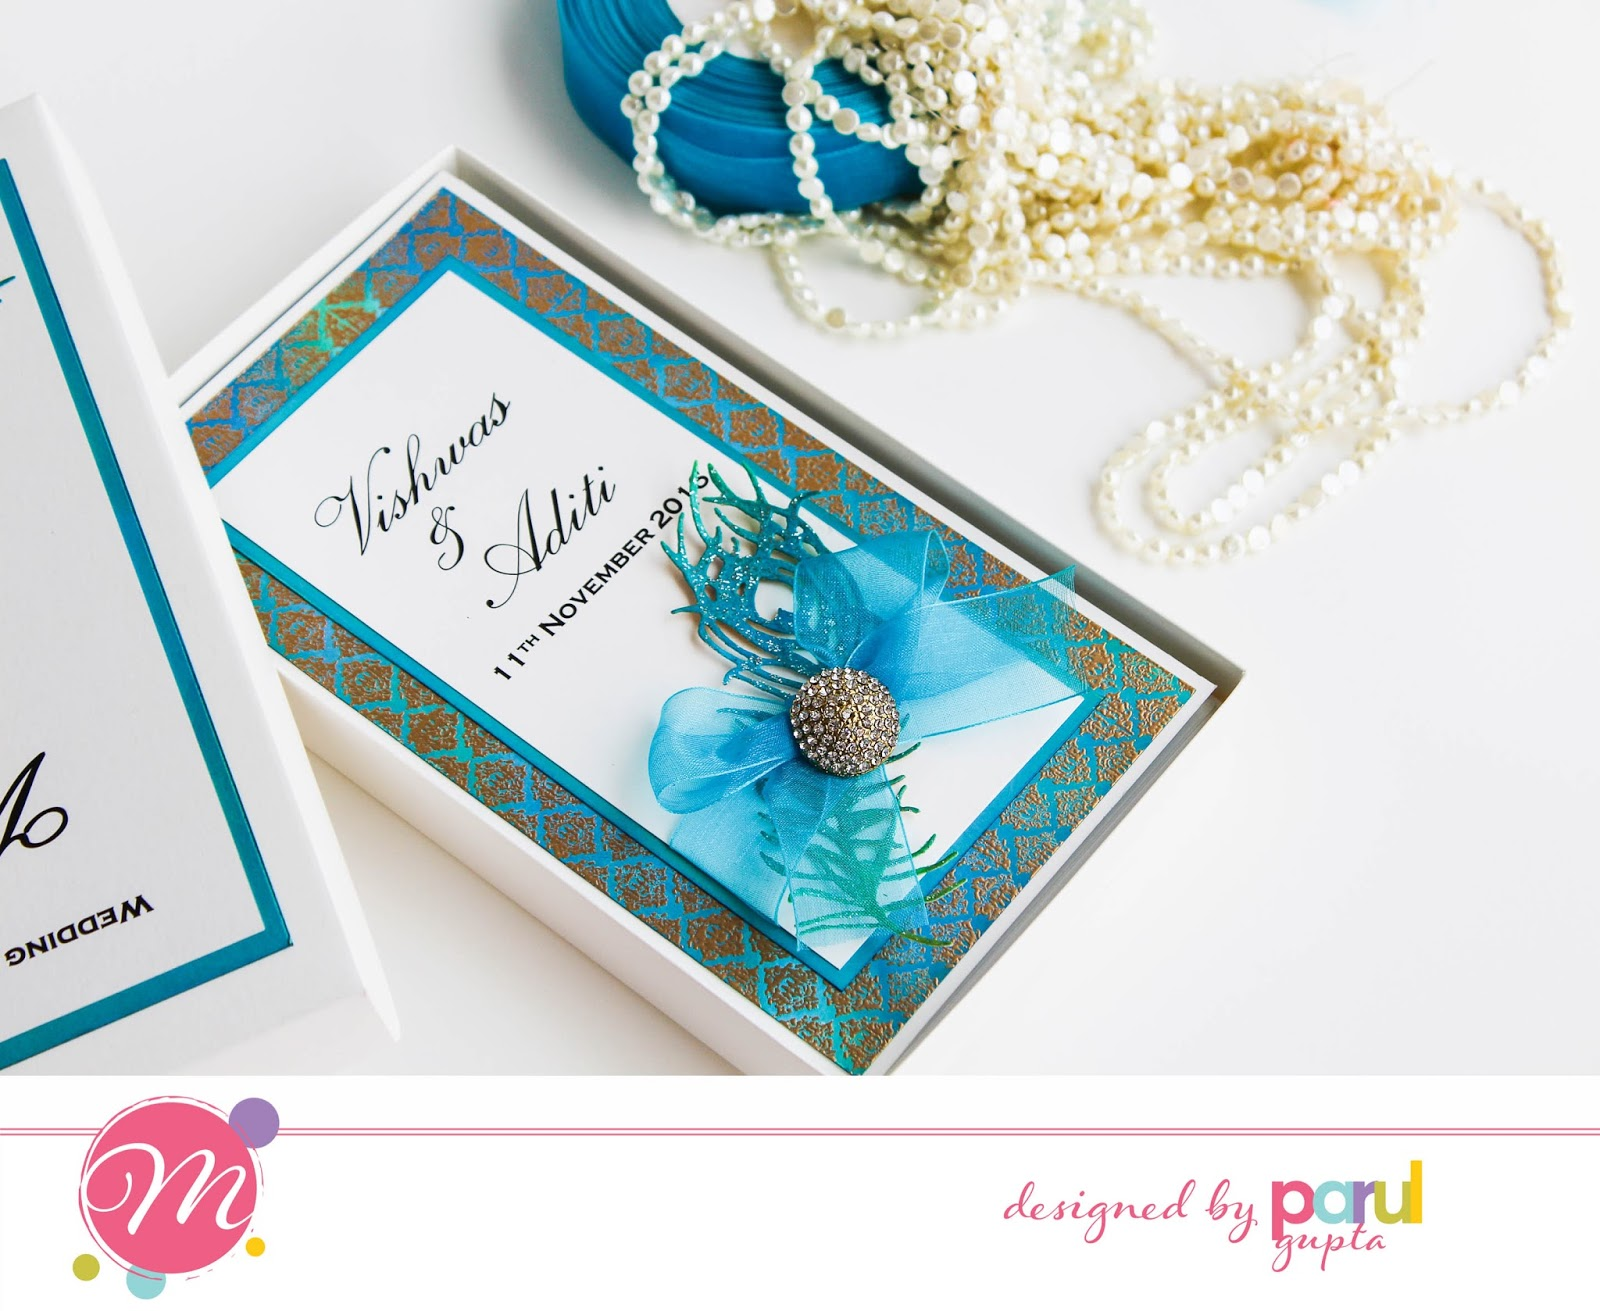 Mudra Craft Stamps: Wedding invitations with Mudra stamps + Tips ...